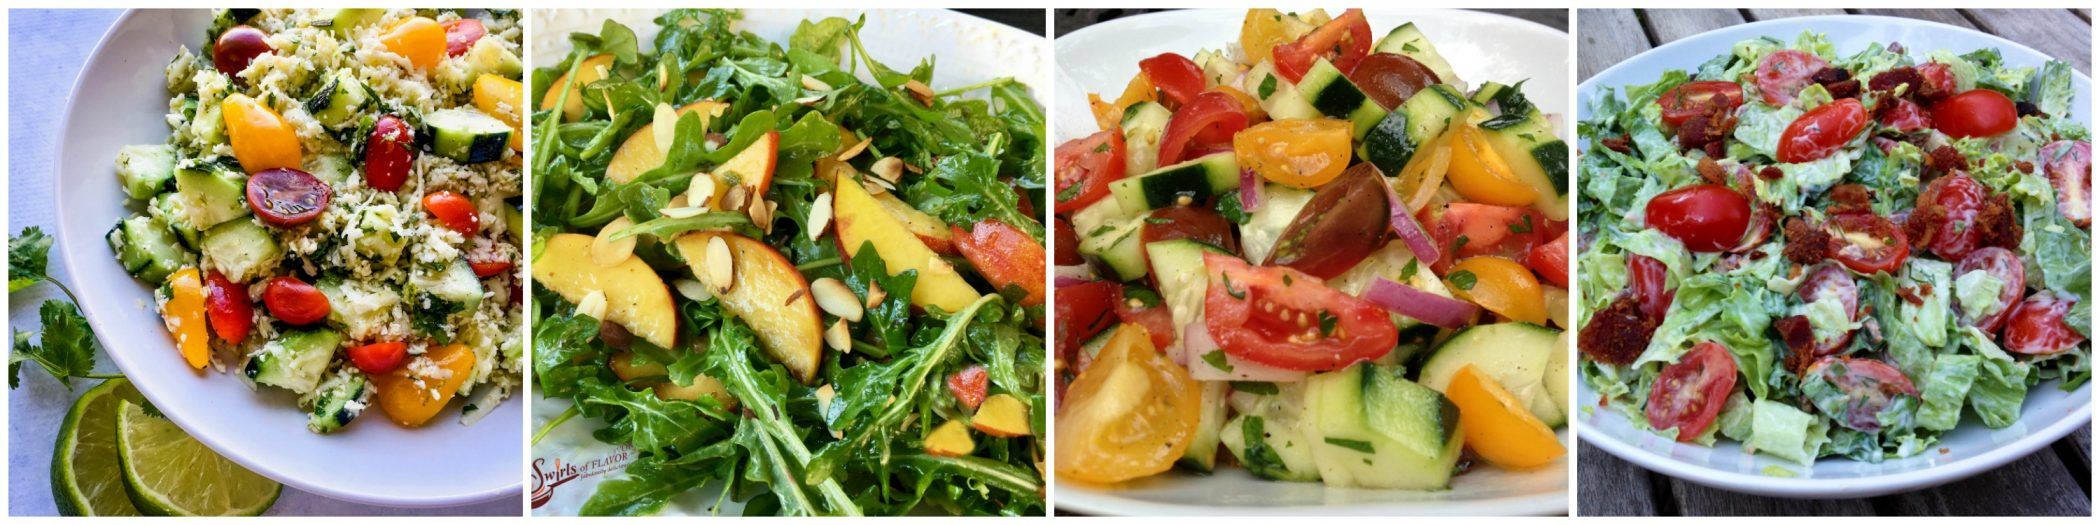 Left to Right: Cauliflower Rice Salad; Peach Arugula Salad; Cucumber Tomato Salad; BLT Salad